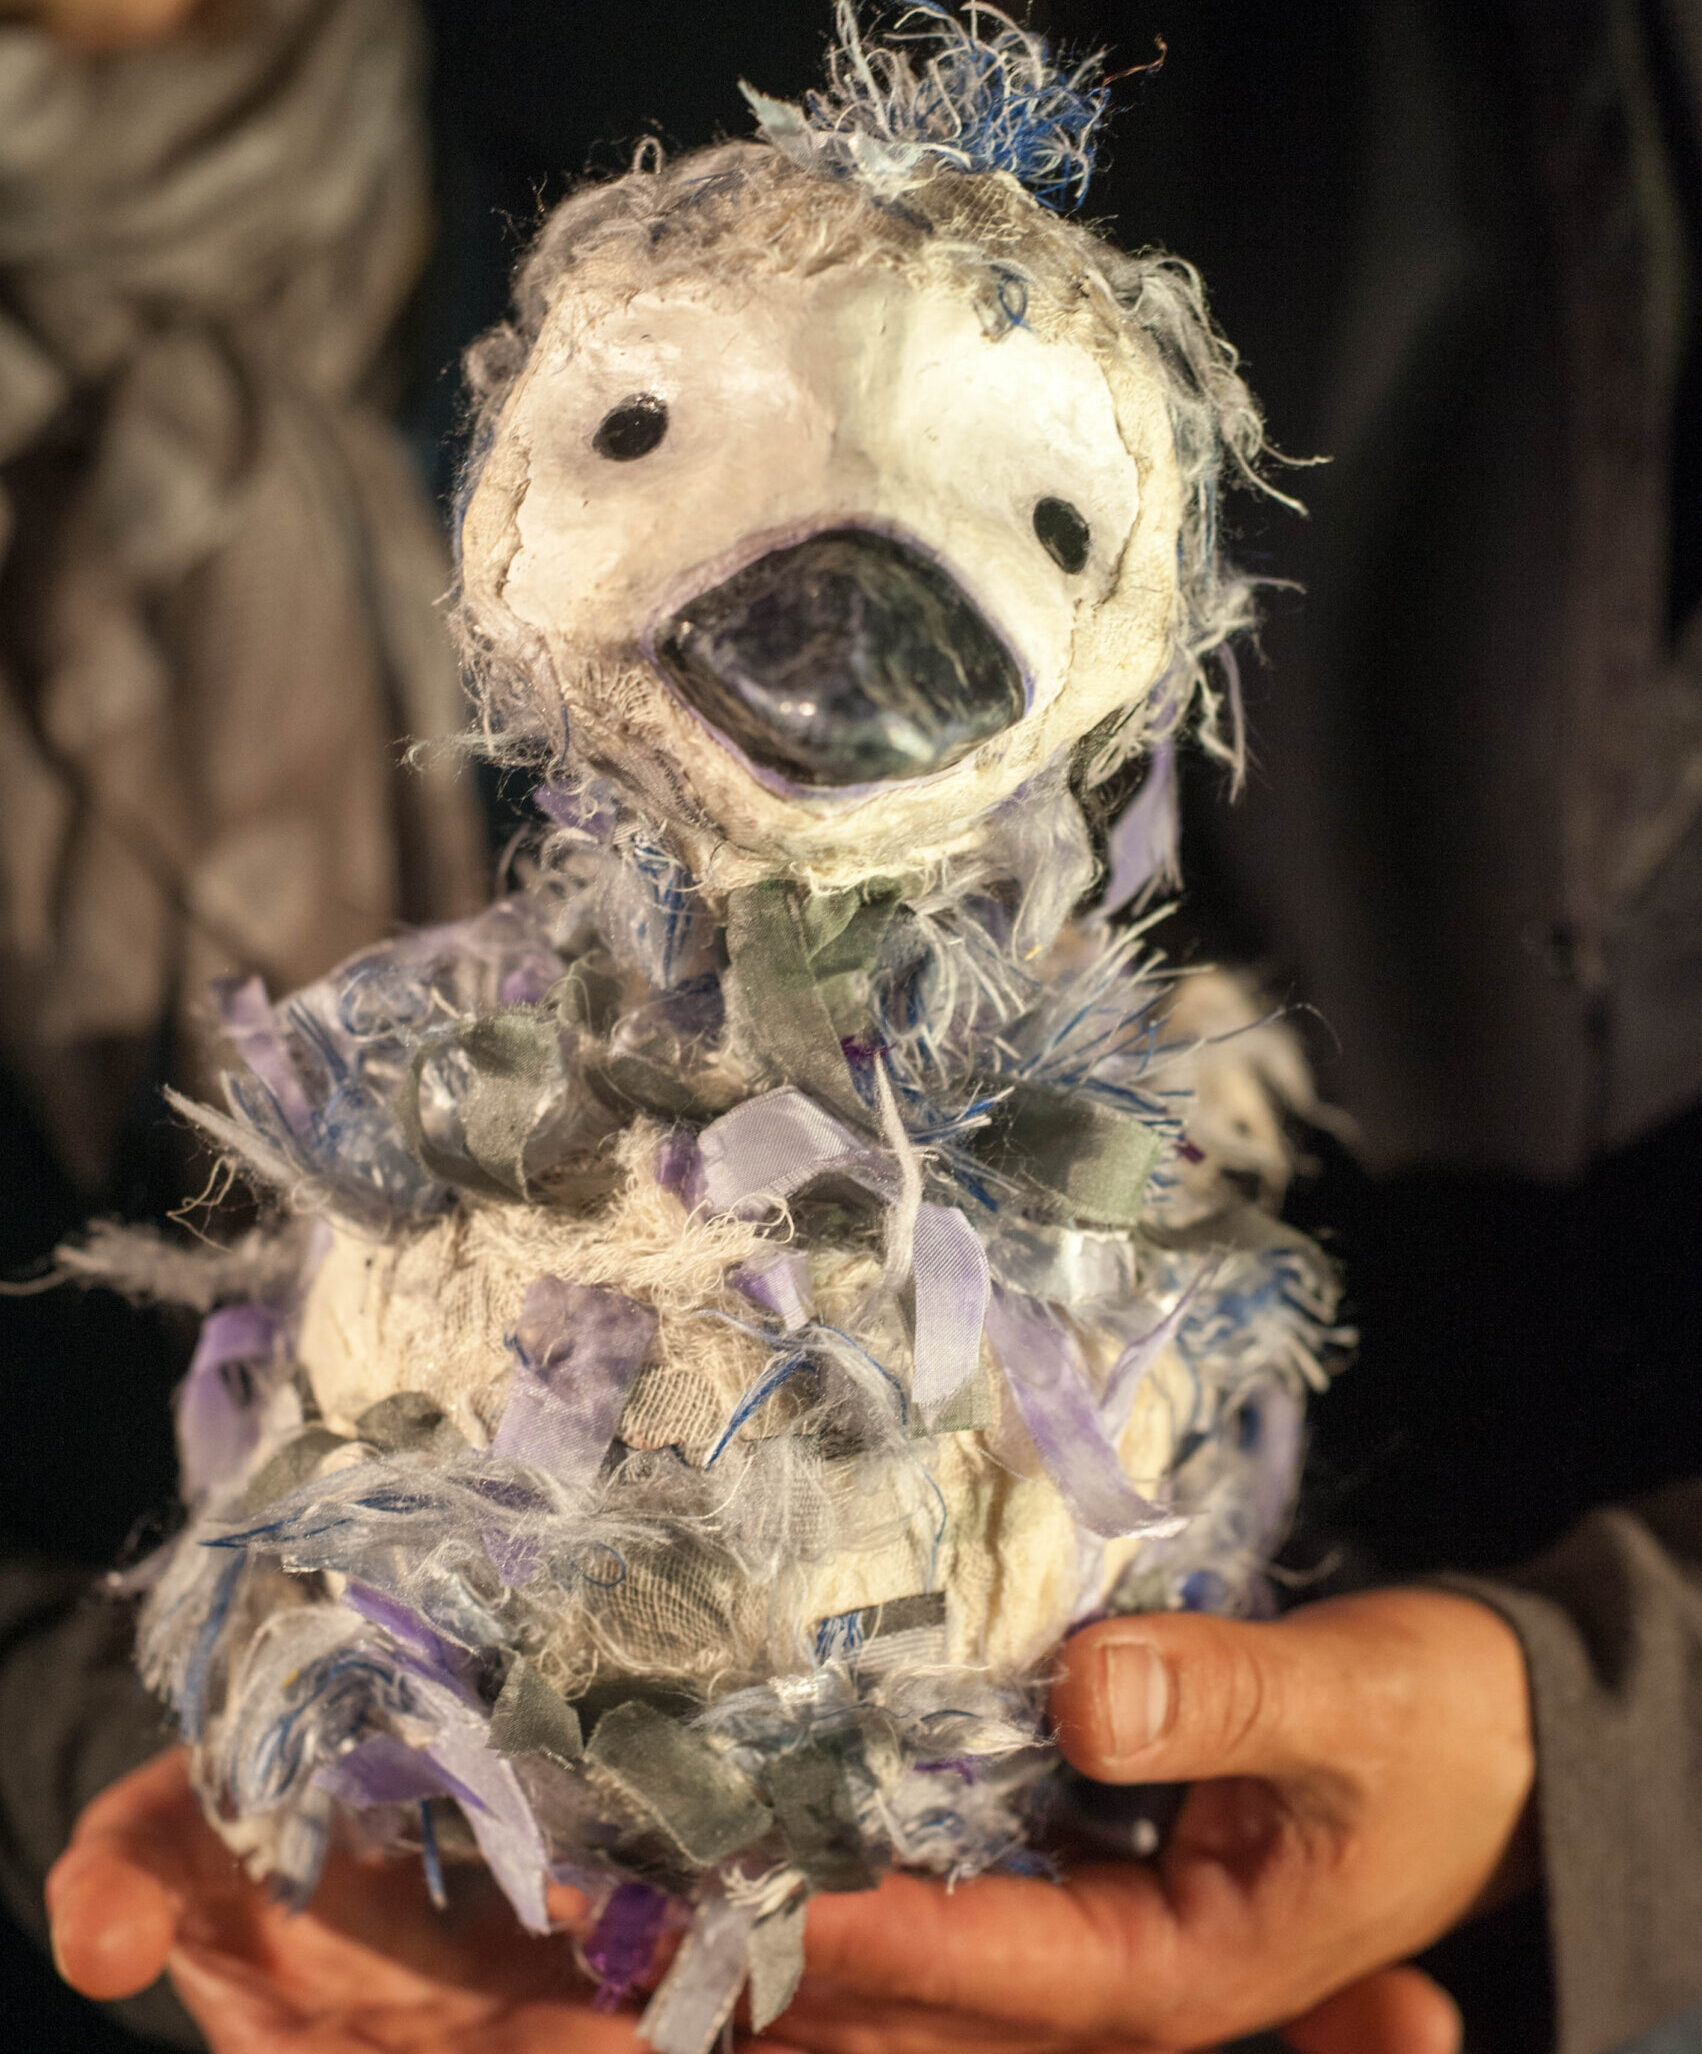 A bird puppet sits in a pair of hands